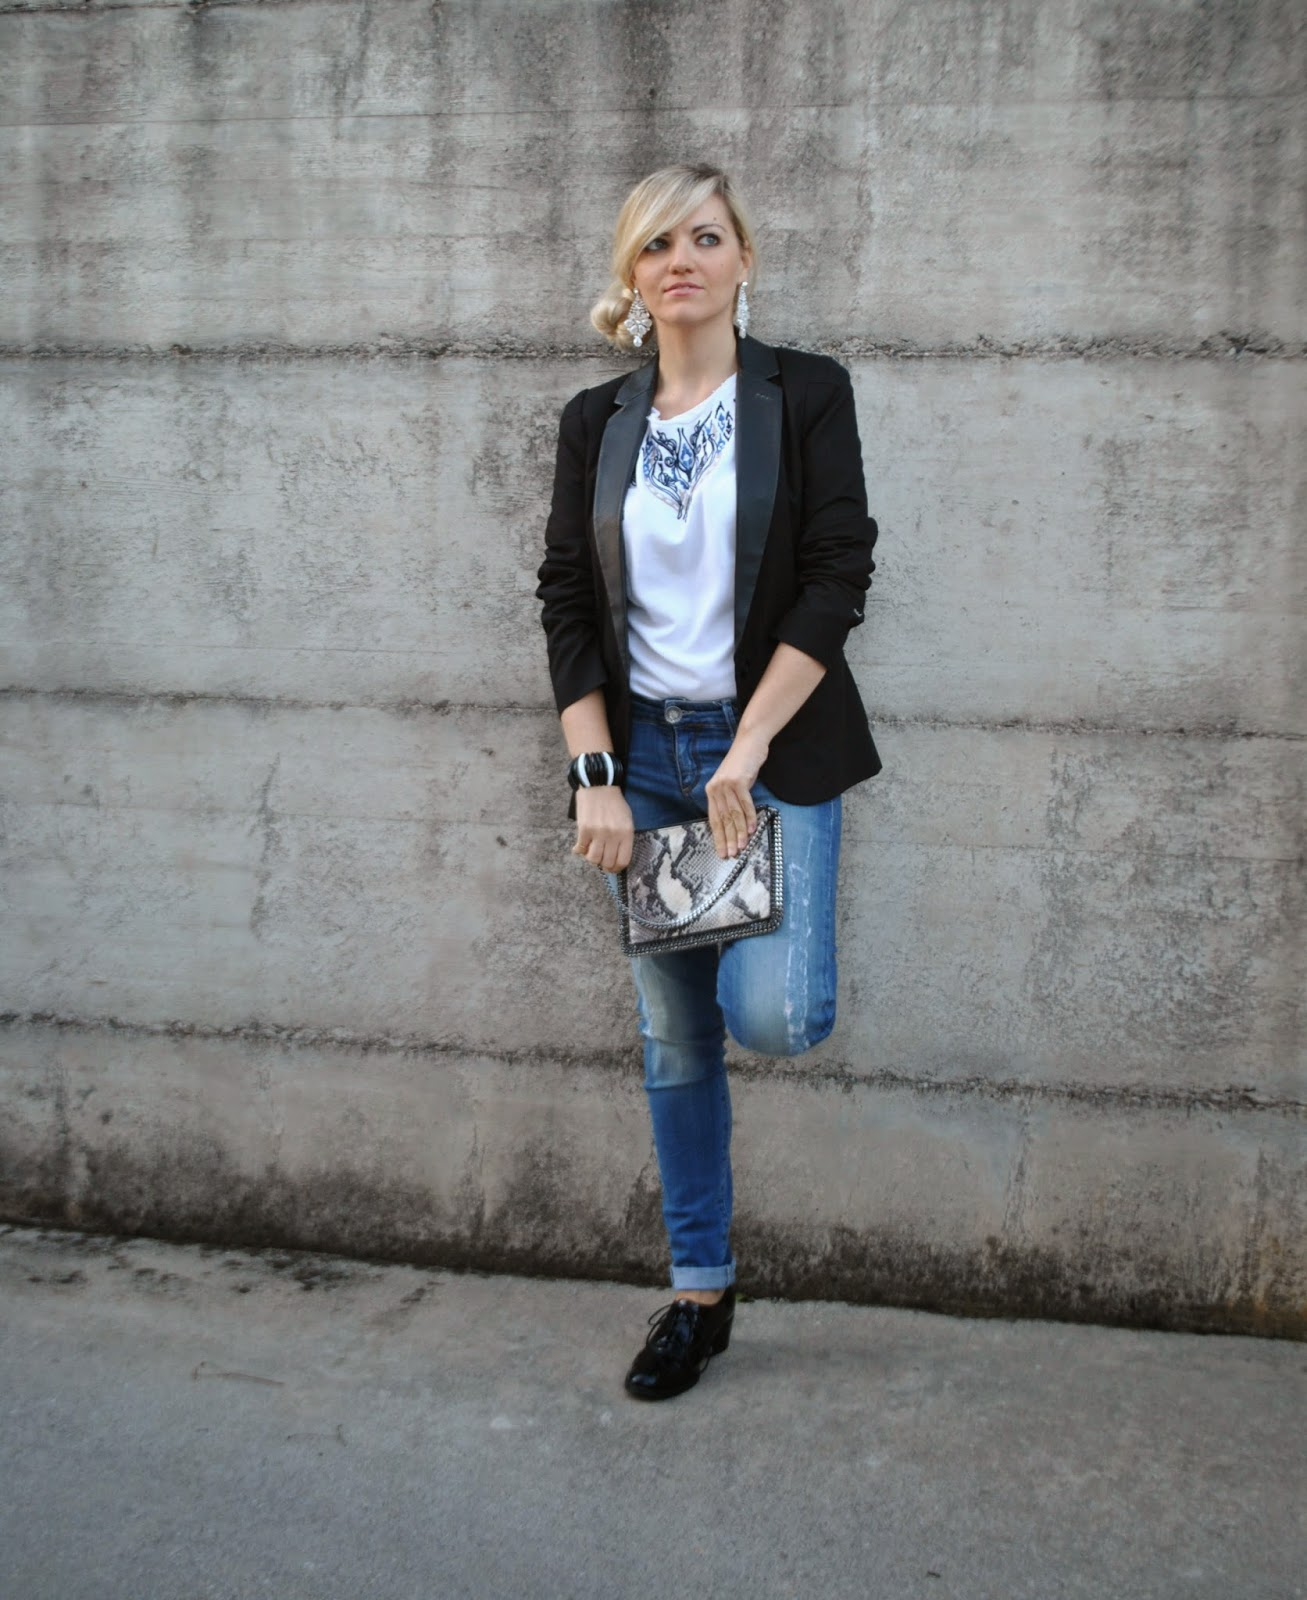 outfit jeans giacca nera con reverse in pelle felpa ricamata e stringate lucide maschili jeans fornarina borsa falabella stella mccartney scarpe stringate abbinamenti scarpe stringate come indossare le scarpe stringate outfit giacca maschili come indossare la giacca maschili outfit jeans skinny e felpa ricamata orecchini majique bianchi acconciatura chignon lateral fashion blogger italiane fashion blogger bionde fashion blogger milano mariafelicia magno mariafelicia magno fashion blogger colorblock by felym majique london earrings falabella bag how to wear lace uo shoes outfit autunnali outfit ottobre 2014 outfit manlike